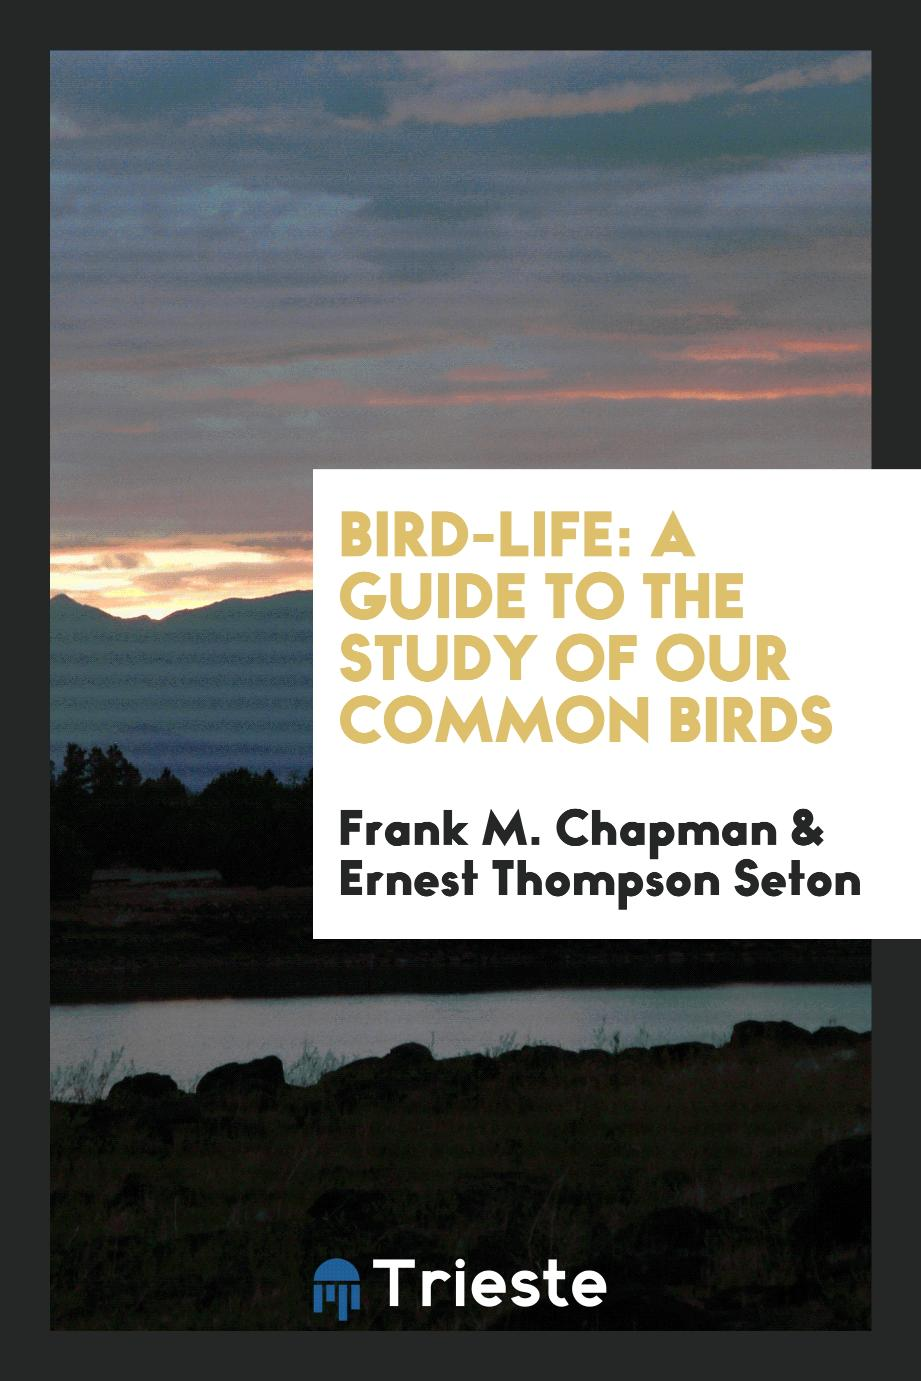 Bird-Life: A Guide to the Study of Our Common Birds